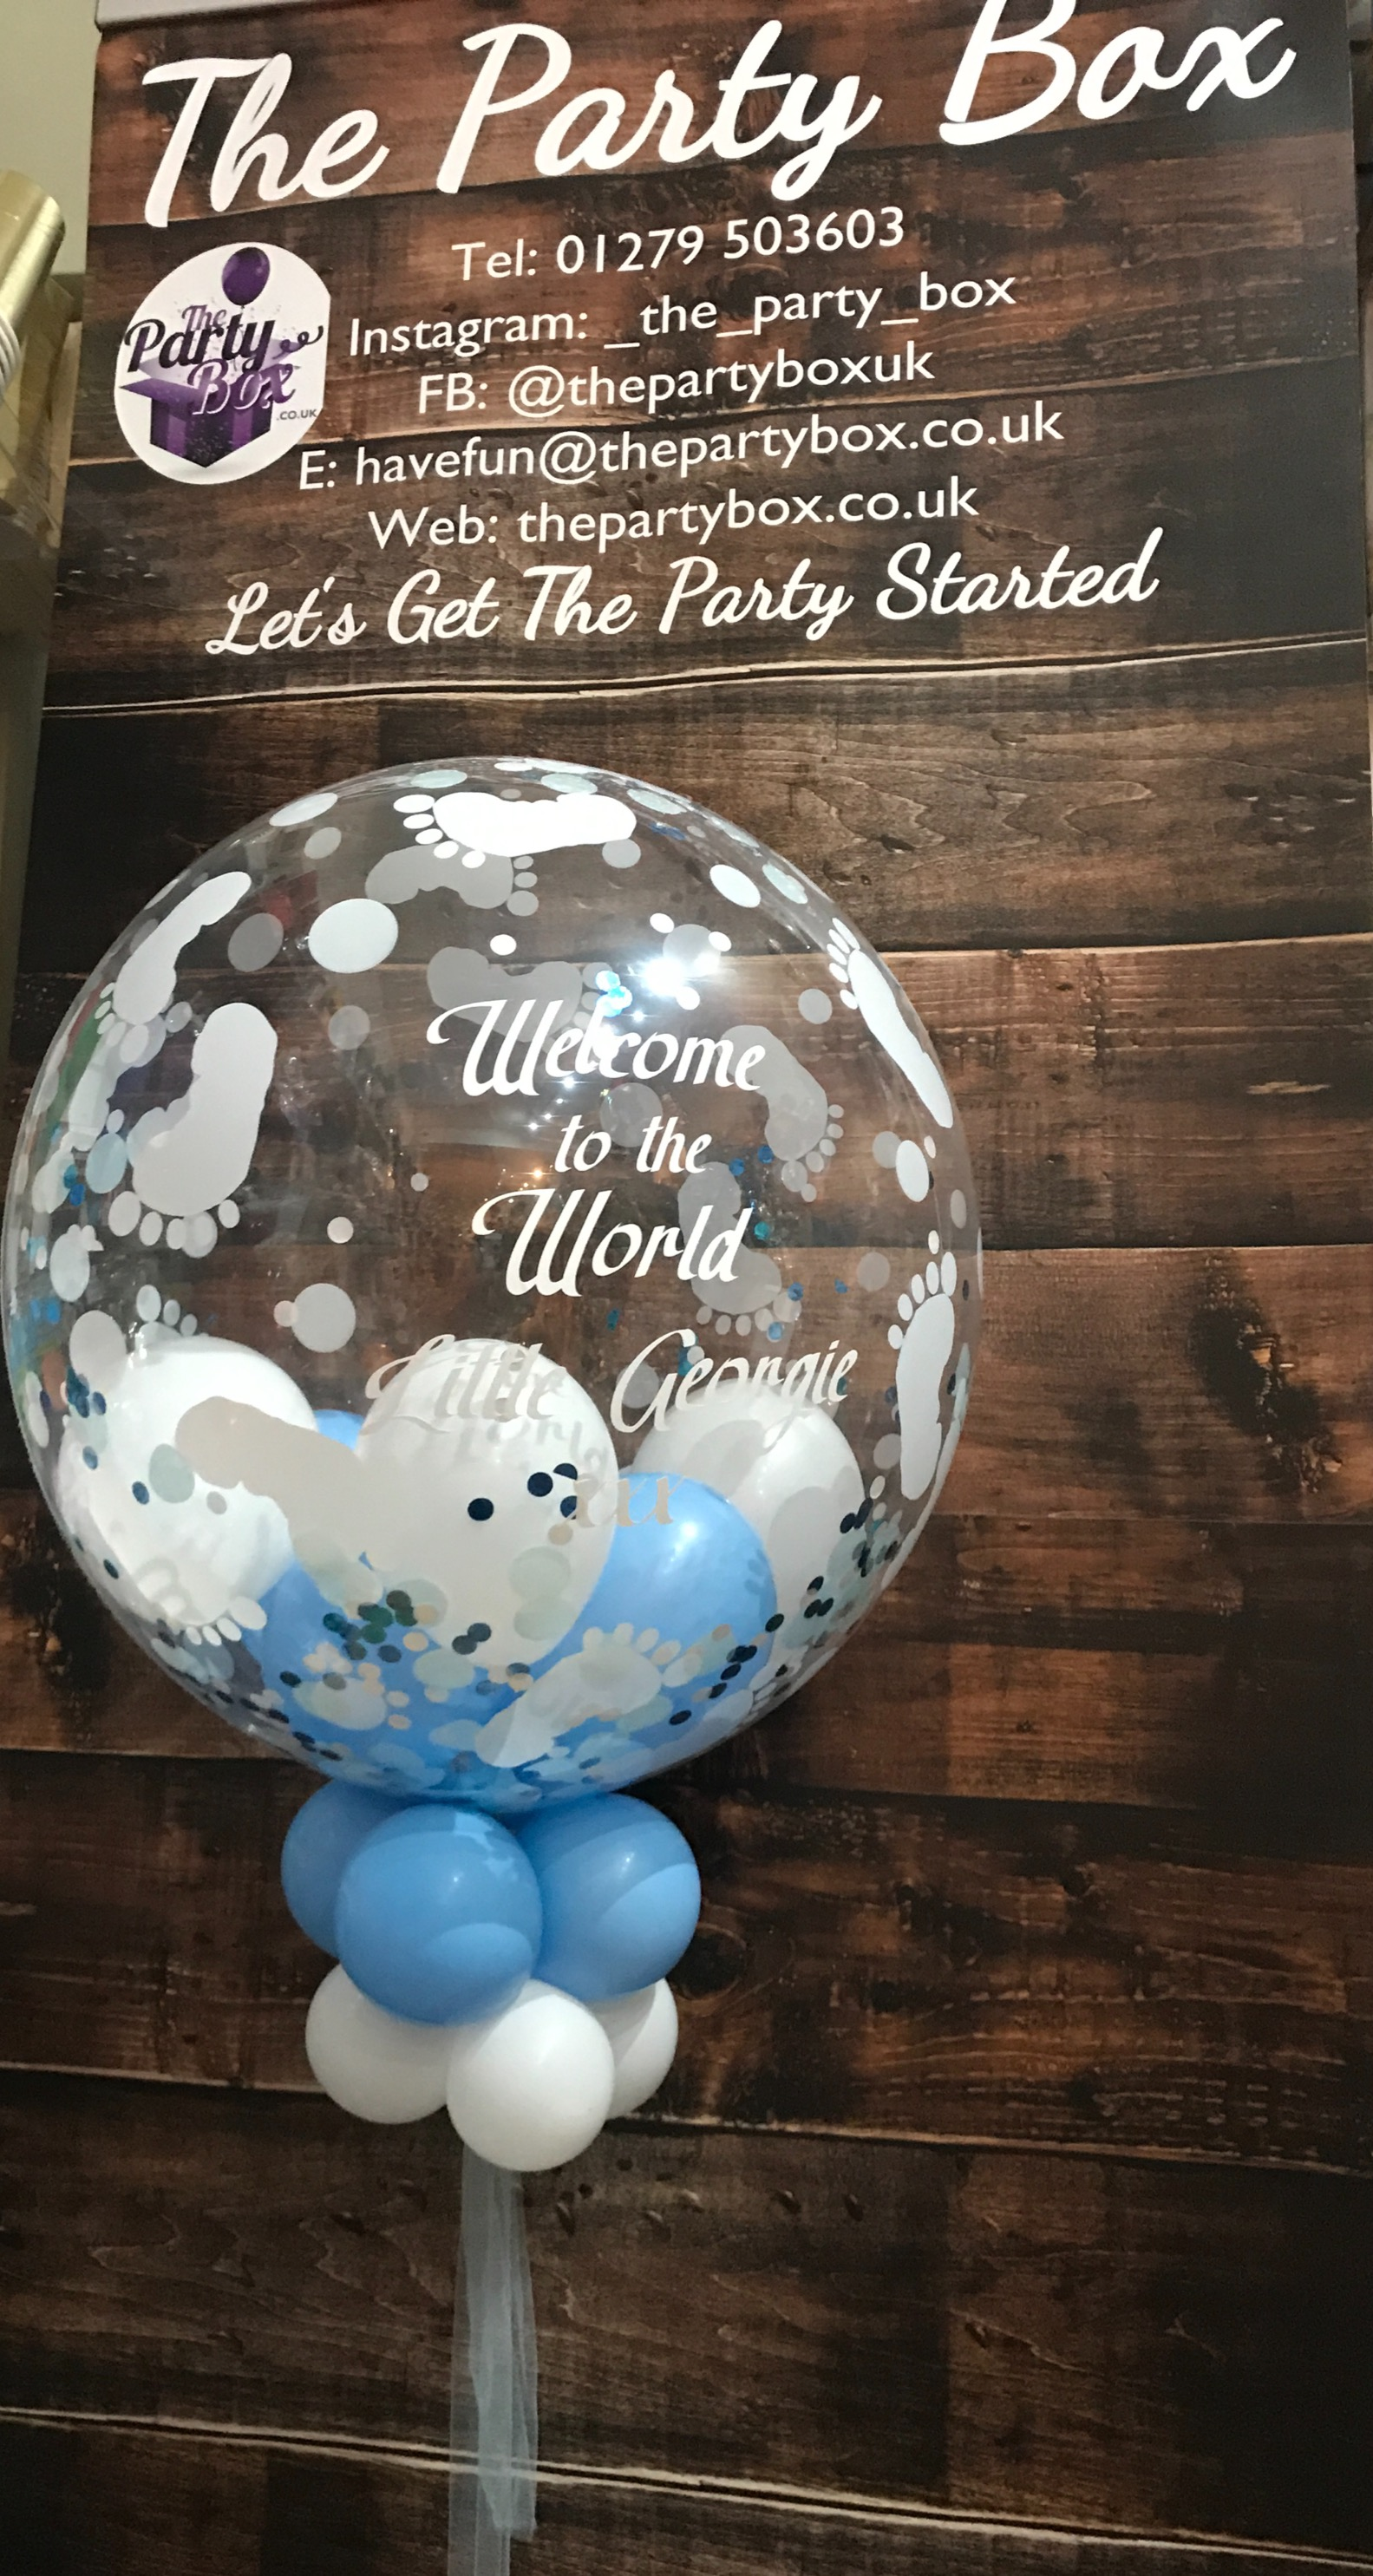 Welcome to the world bubble balloon